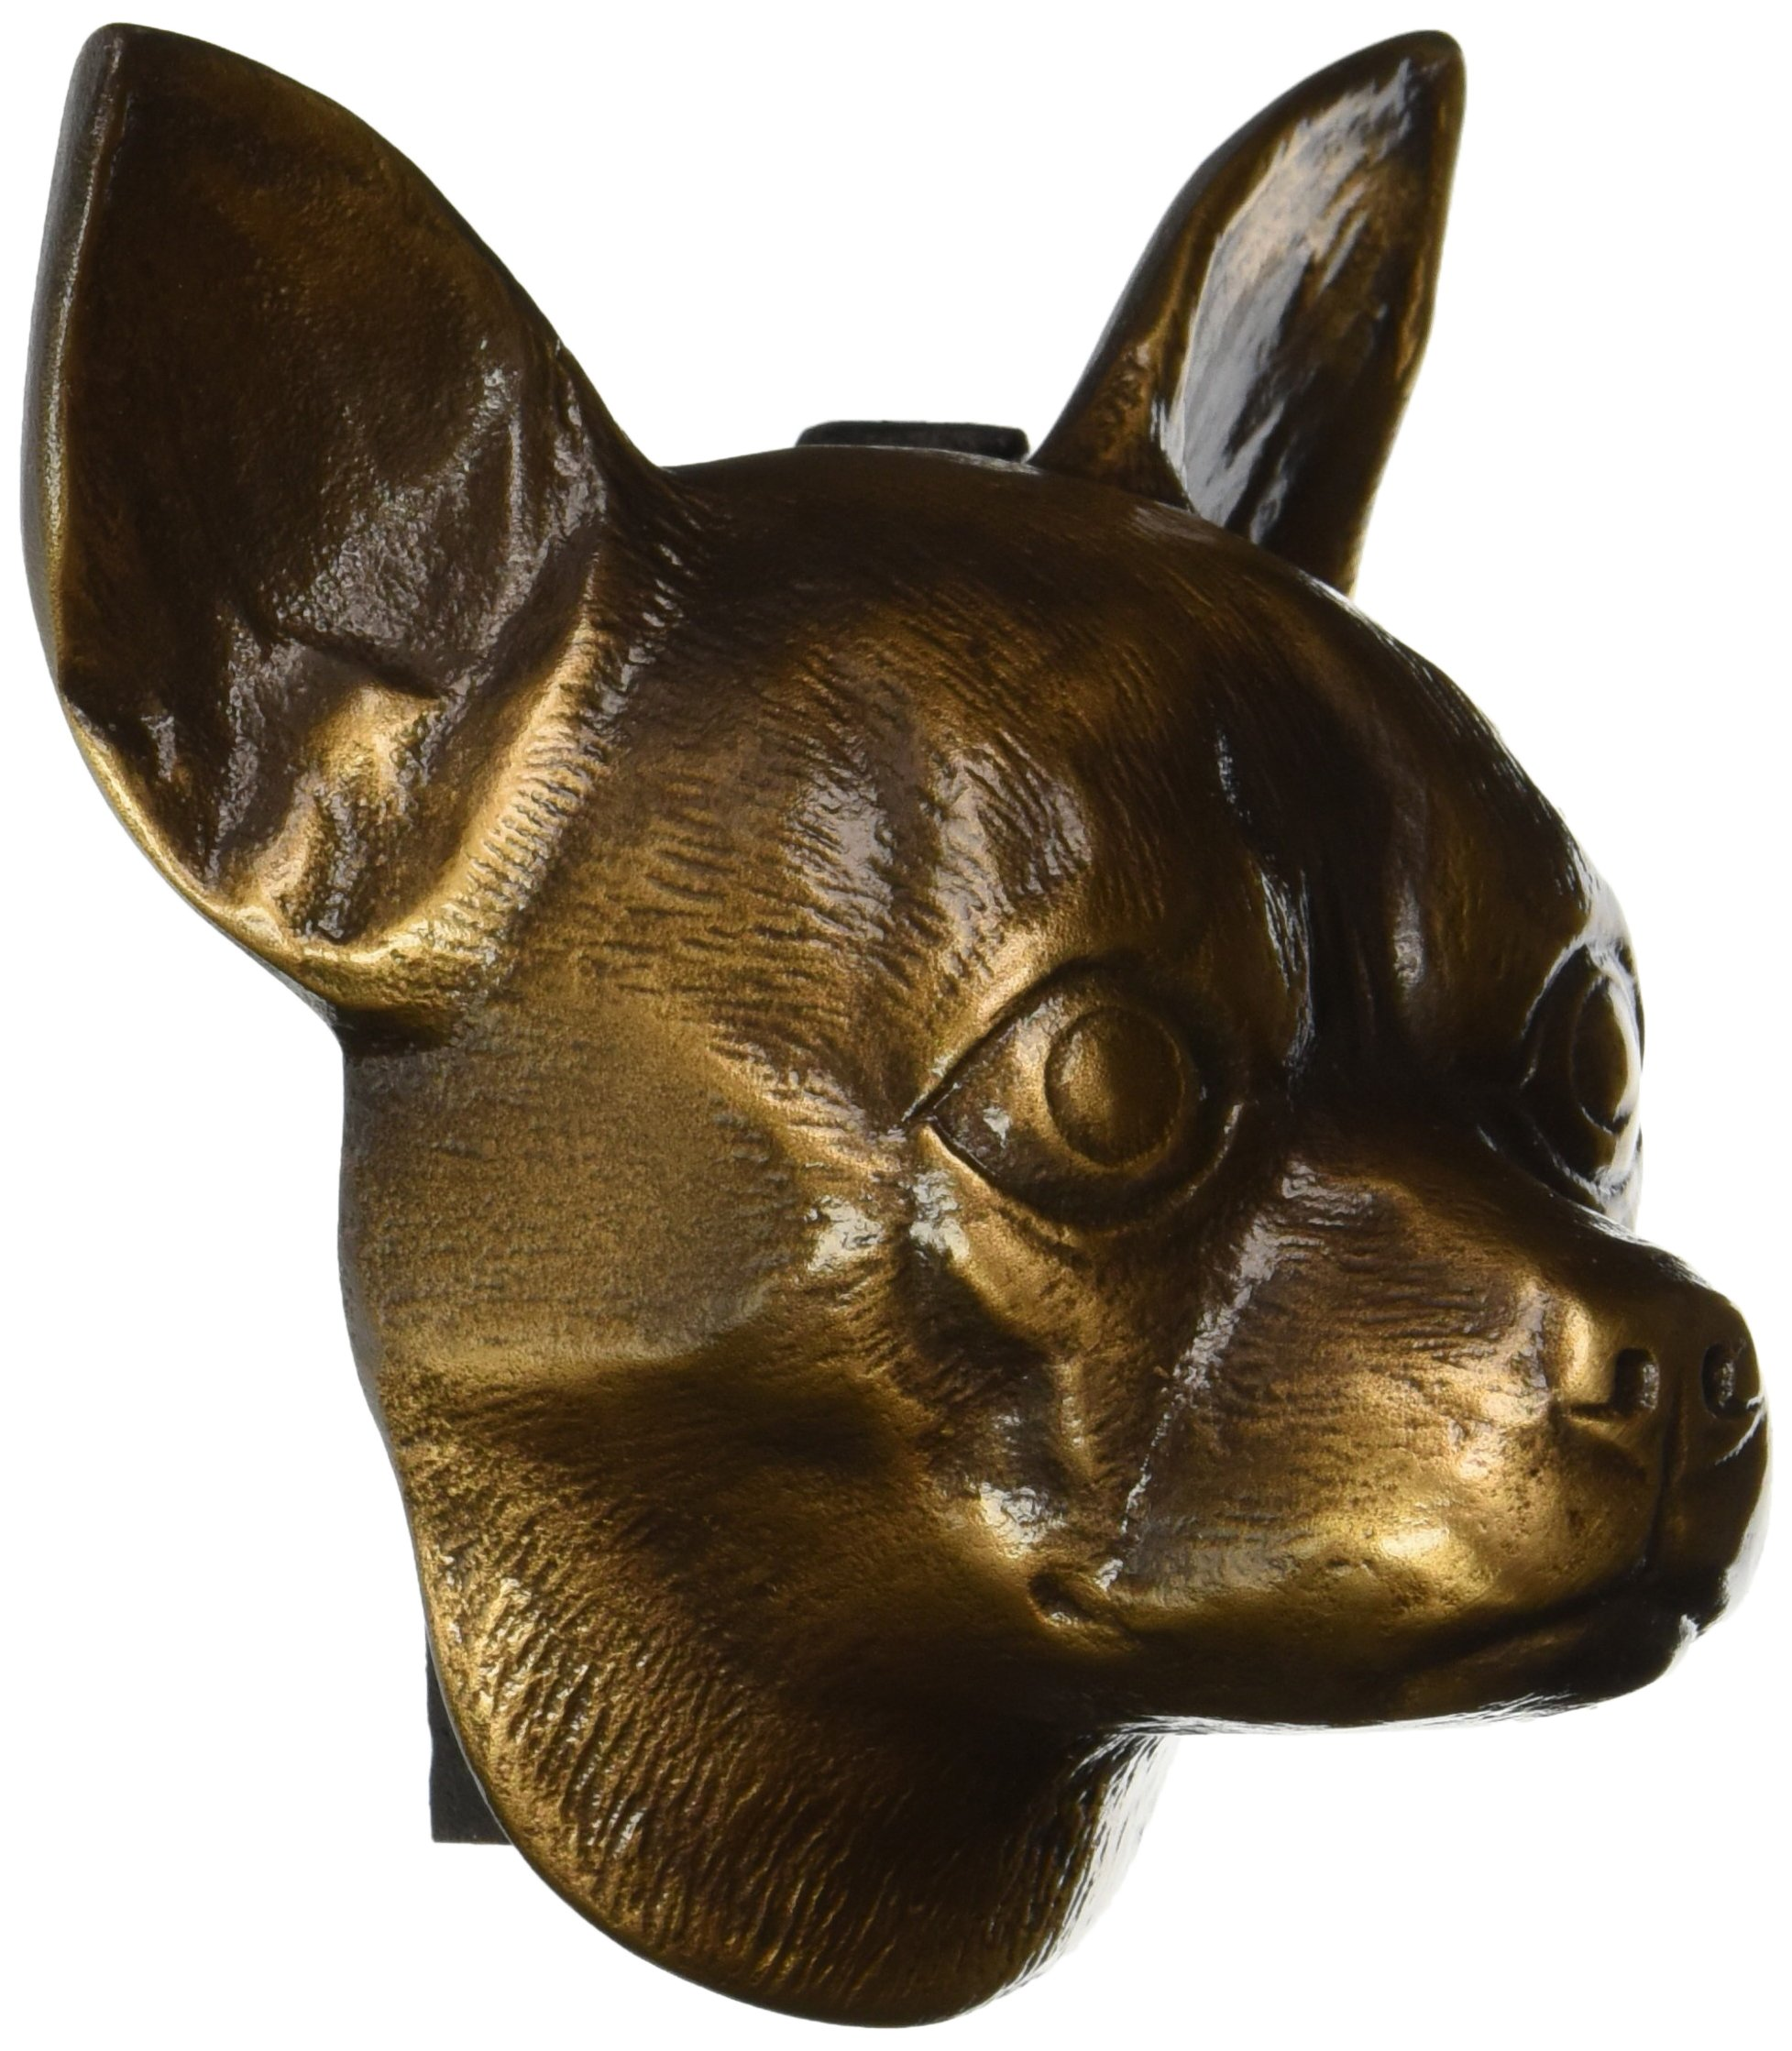 Chihuahua Dog Knocker - Bronze by Michael Healy Designs